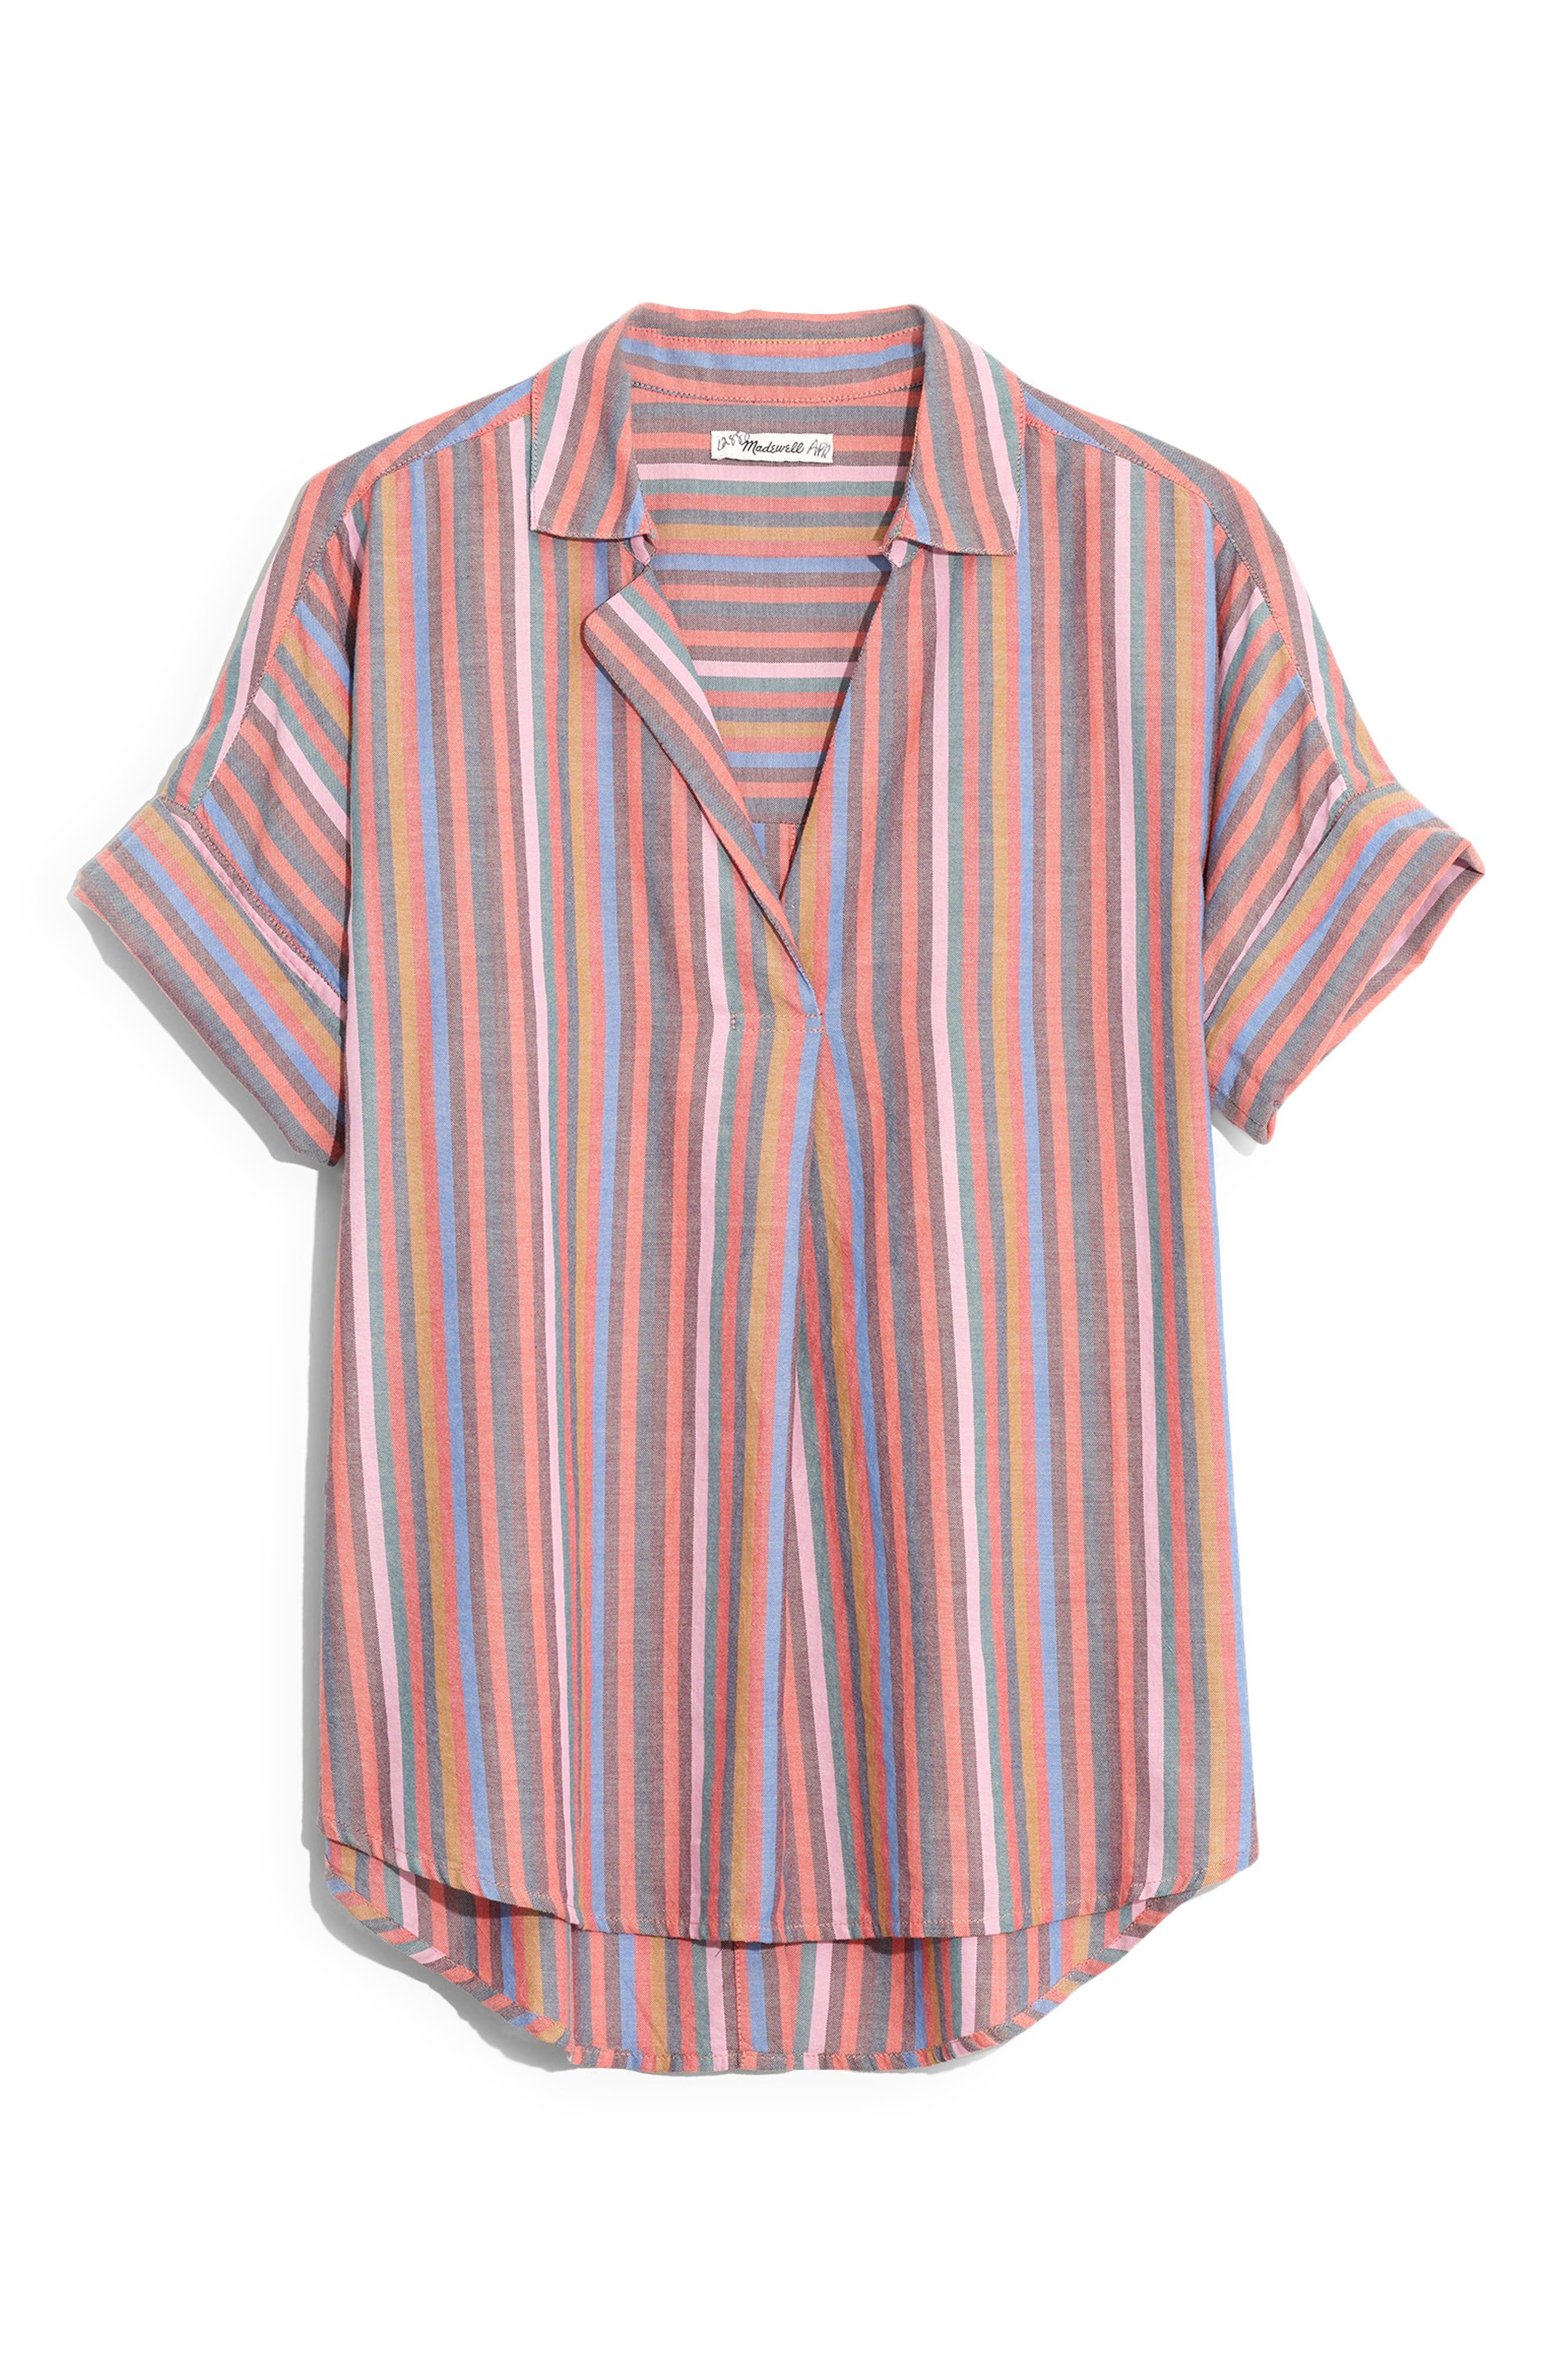 MADEWELL, Courier Rainbow Stripe Button Back Shirt, Alternate thumbnail 5, color, MULLED WINE SMITH STRIPE